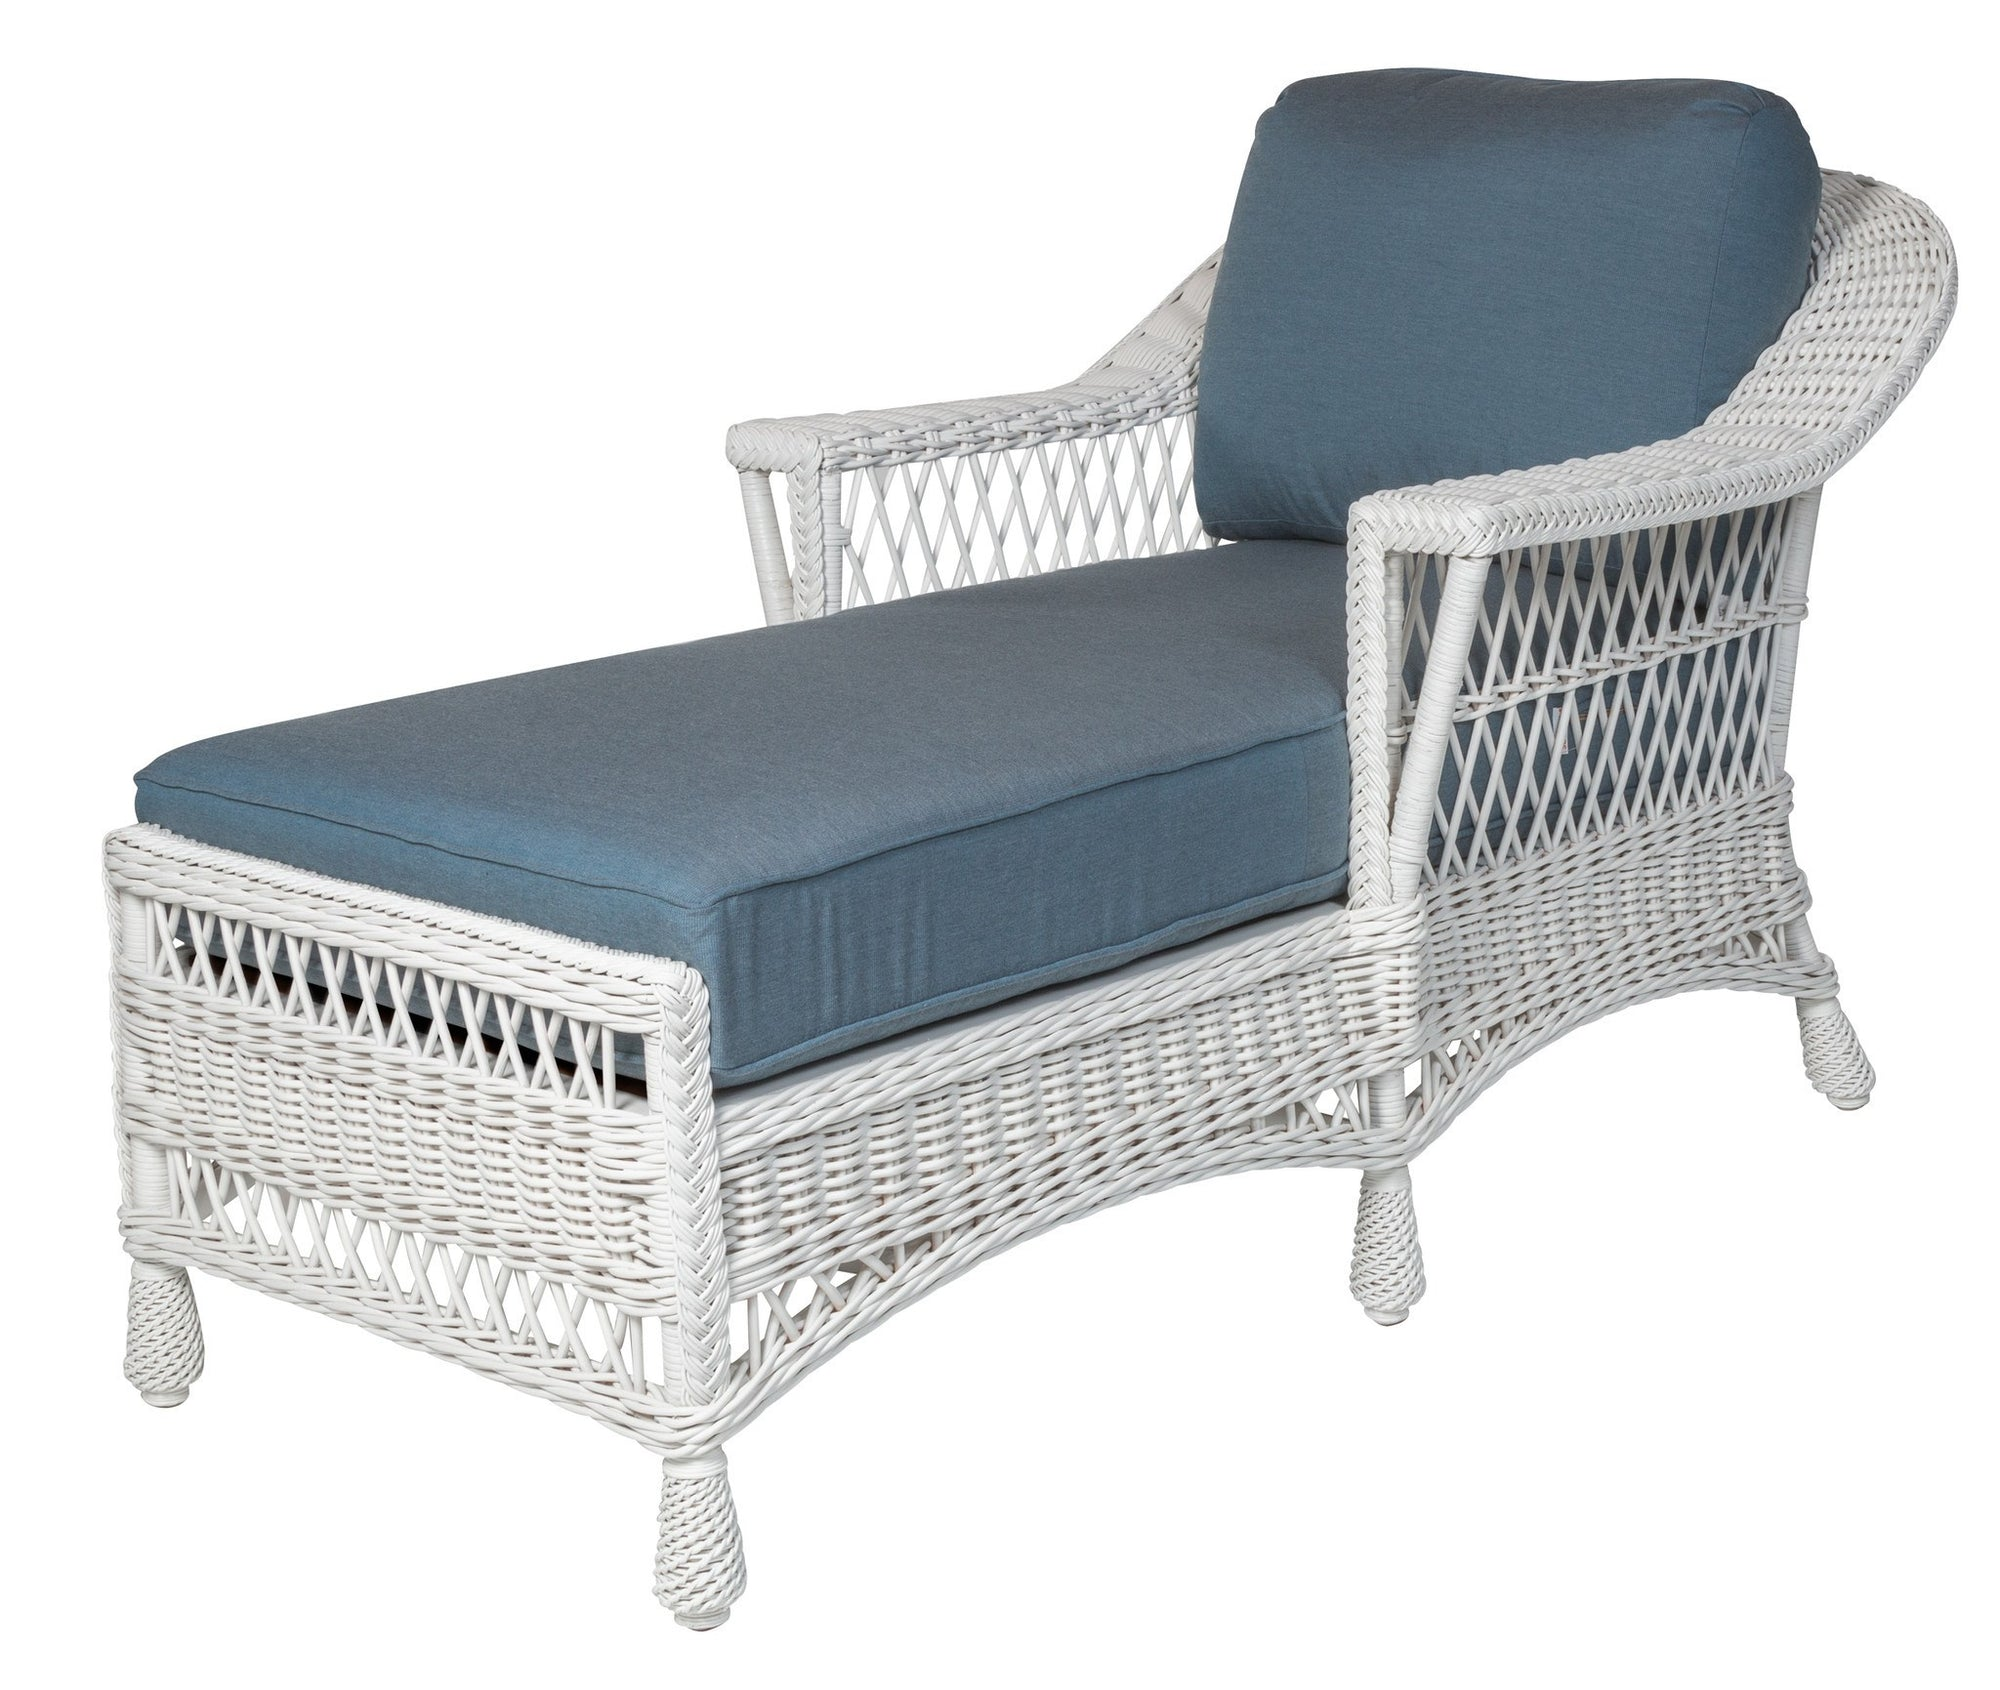 Designer Wicker & Rattan By Tribor Designer Wicker Bar Harbor Chaise Lounge Chair Lounge Chair - Rattan Imports